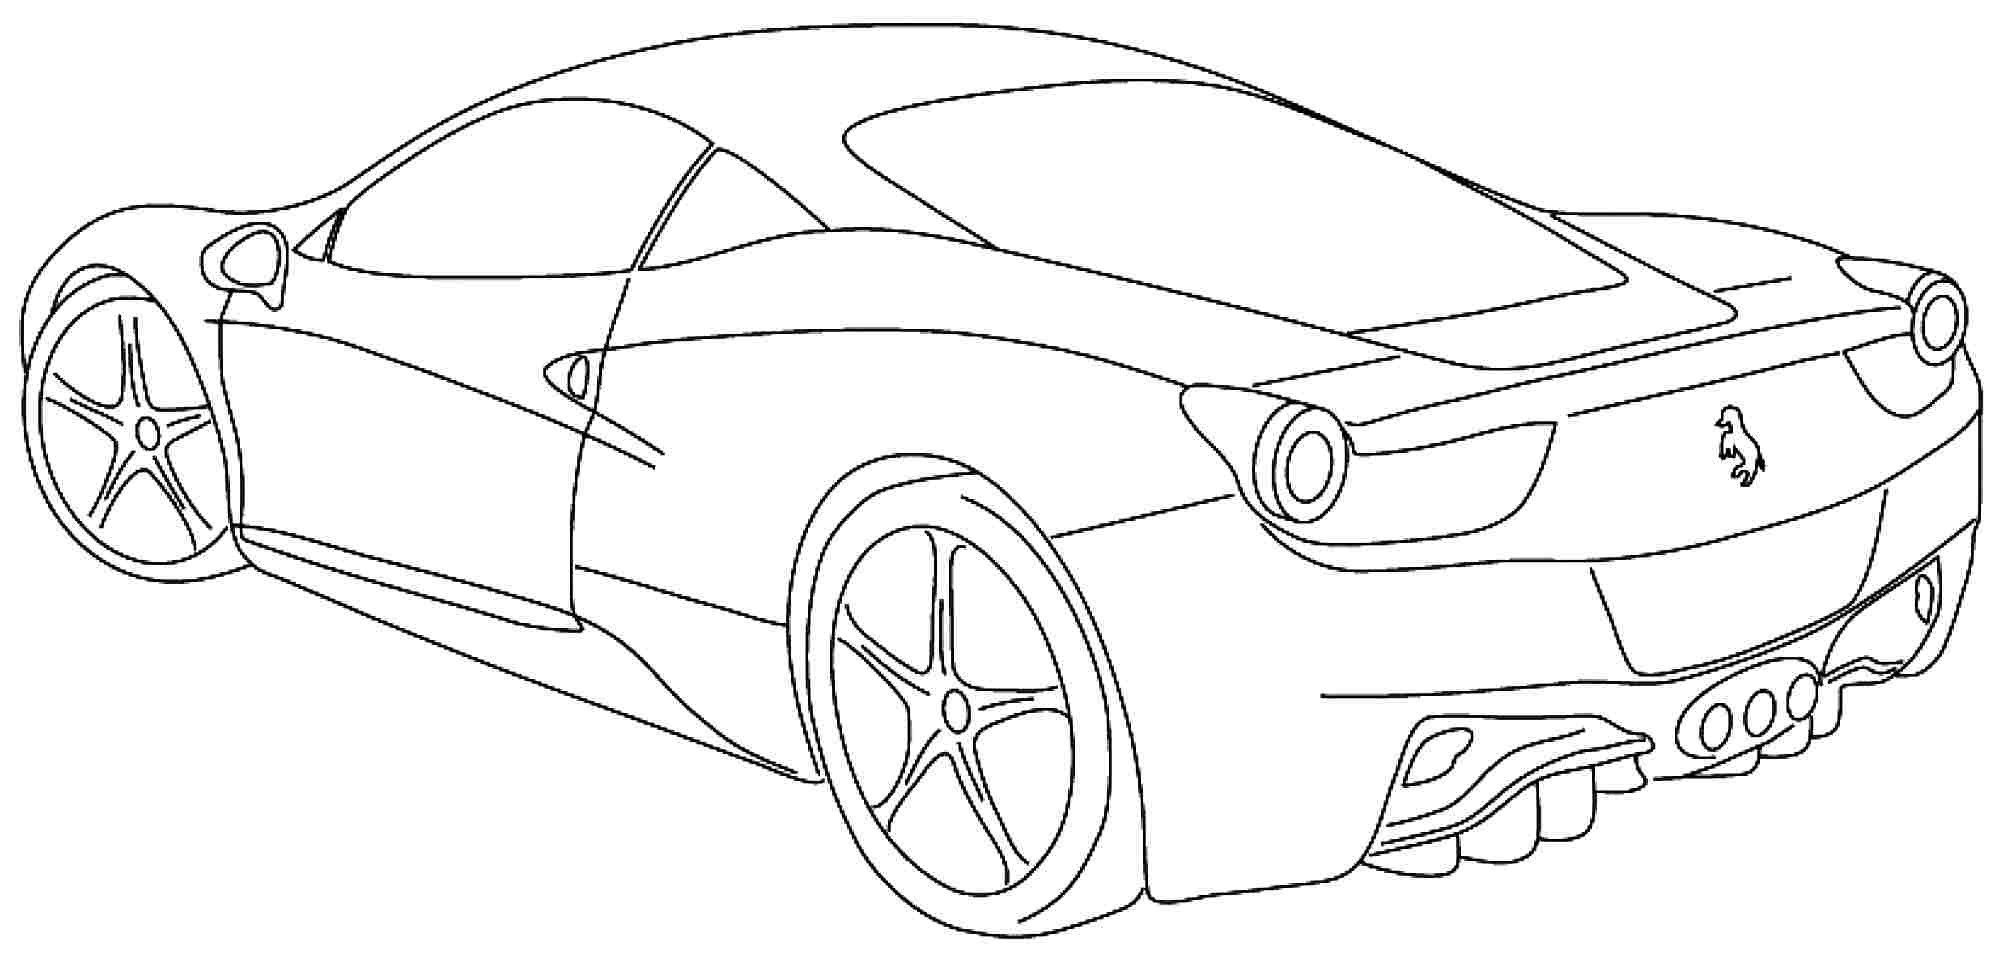 coloring pages ferrari cars ferrari sport car high speed coloring page ferrari car ferrari pages coloring cars